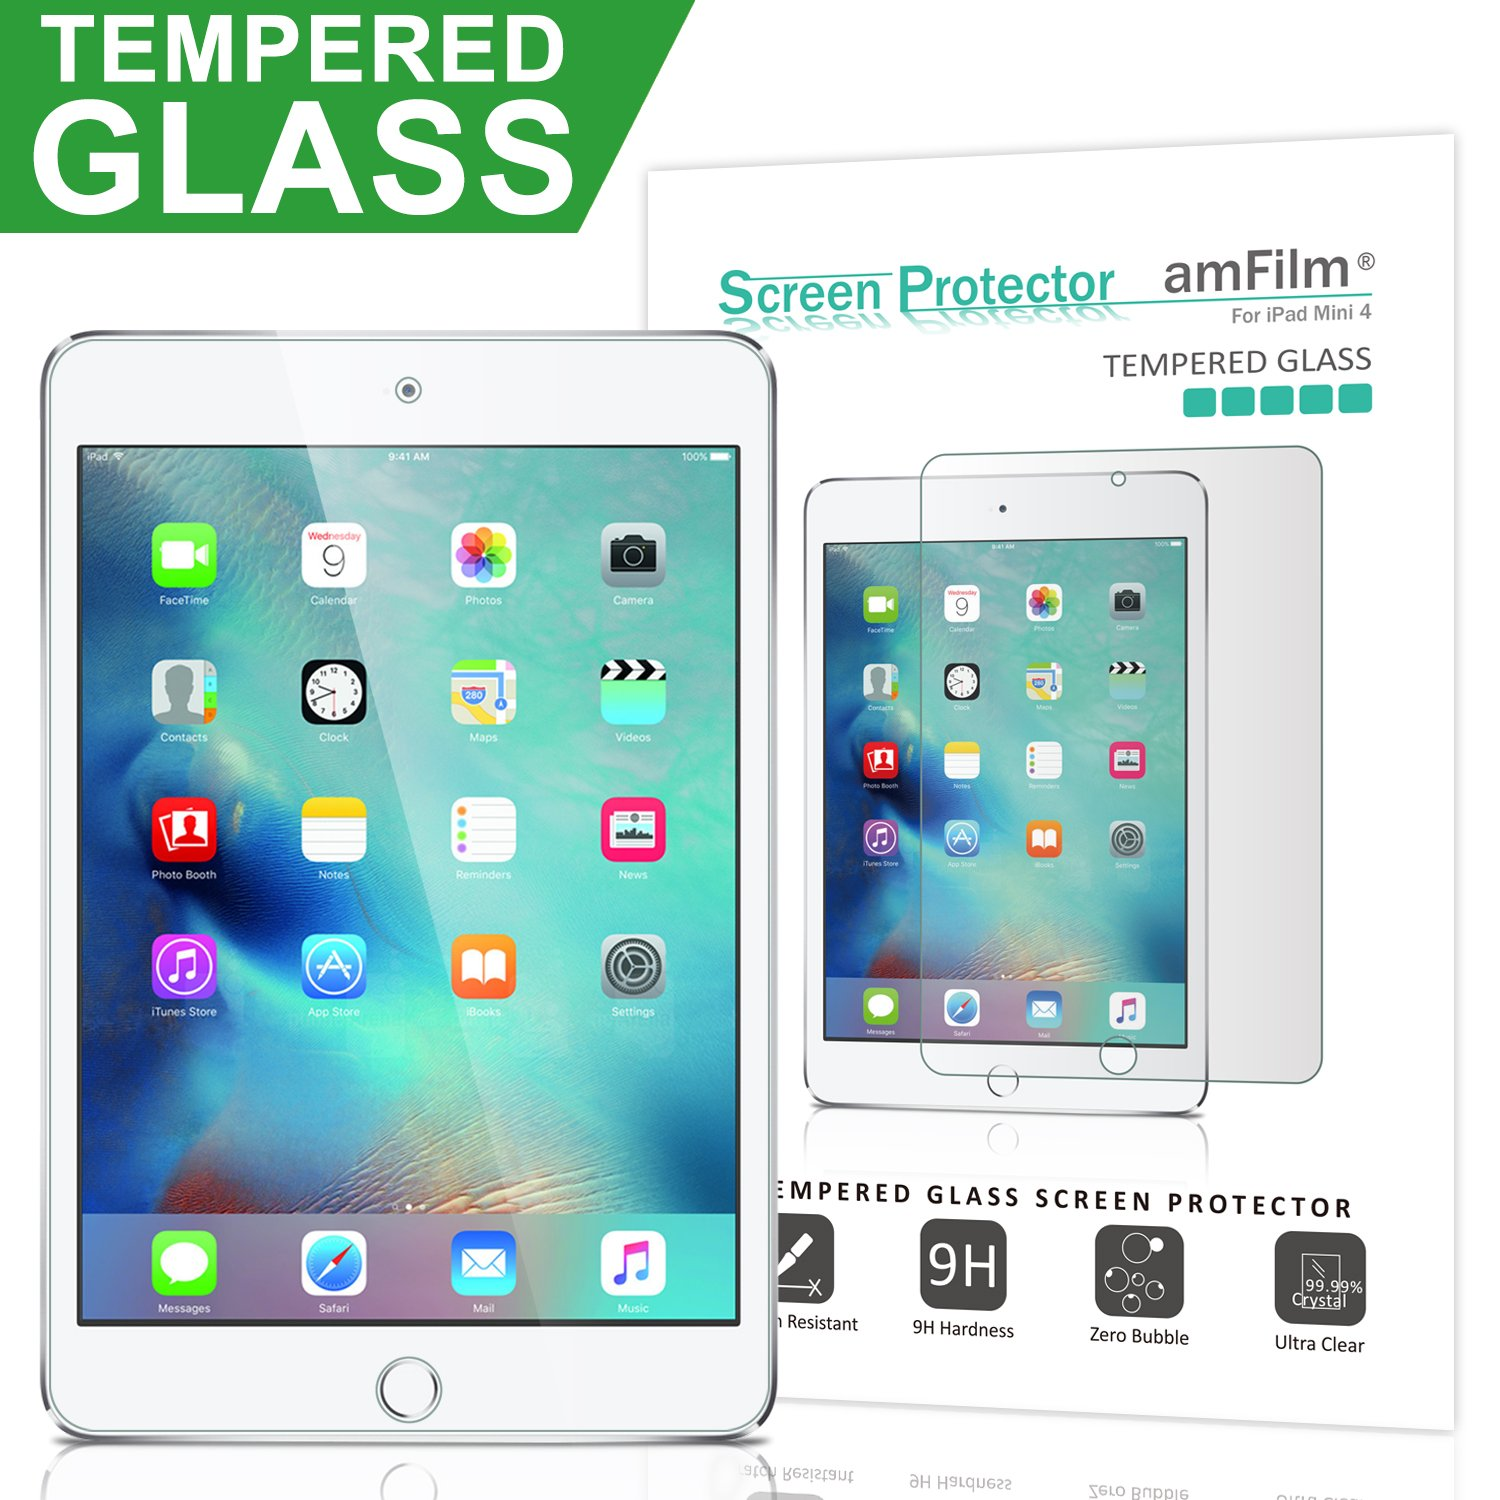 amFilm iPad Mini 4 Tempered Glass Screen Protector 0.33mm 2.5D Rounded Edge for Apple iPad Mini 4 2015 (1-Pack)